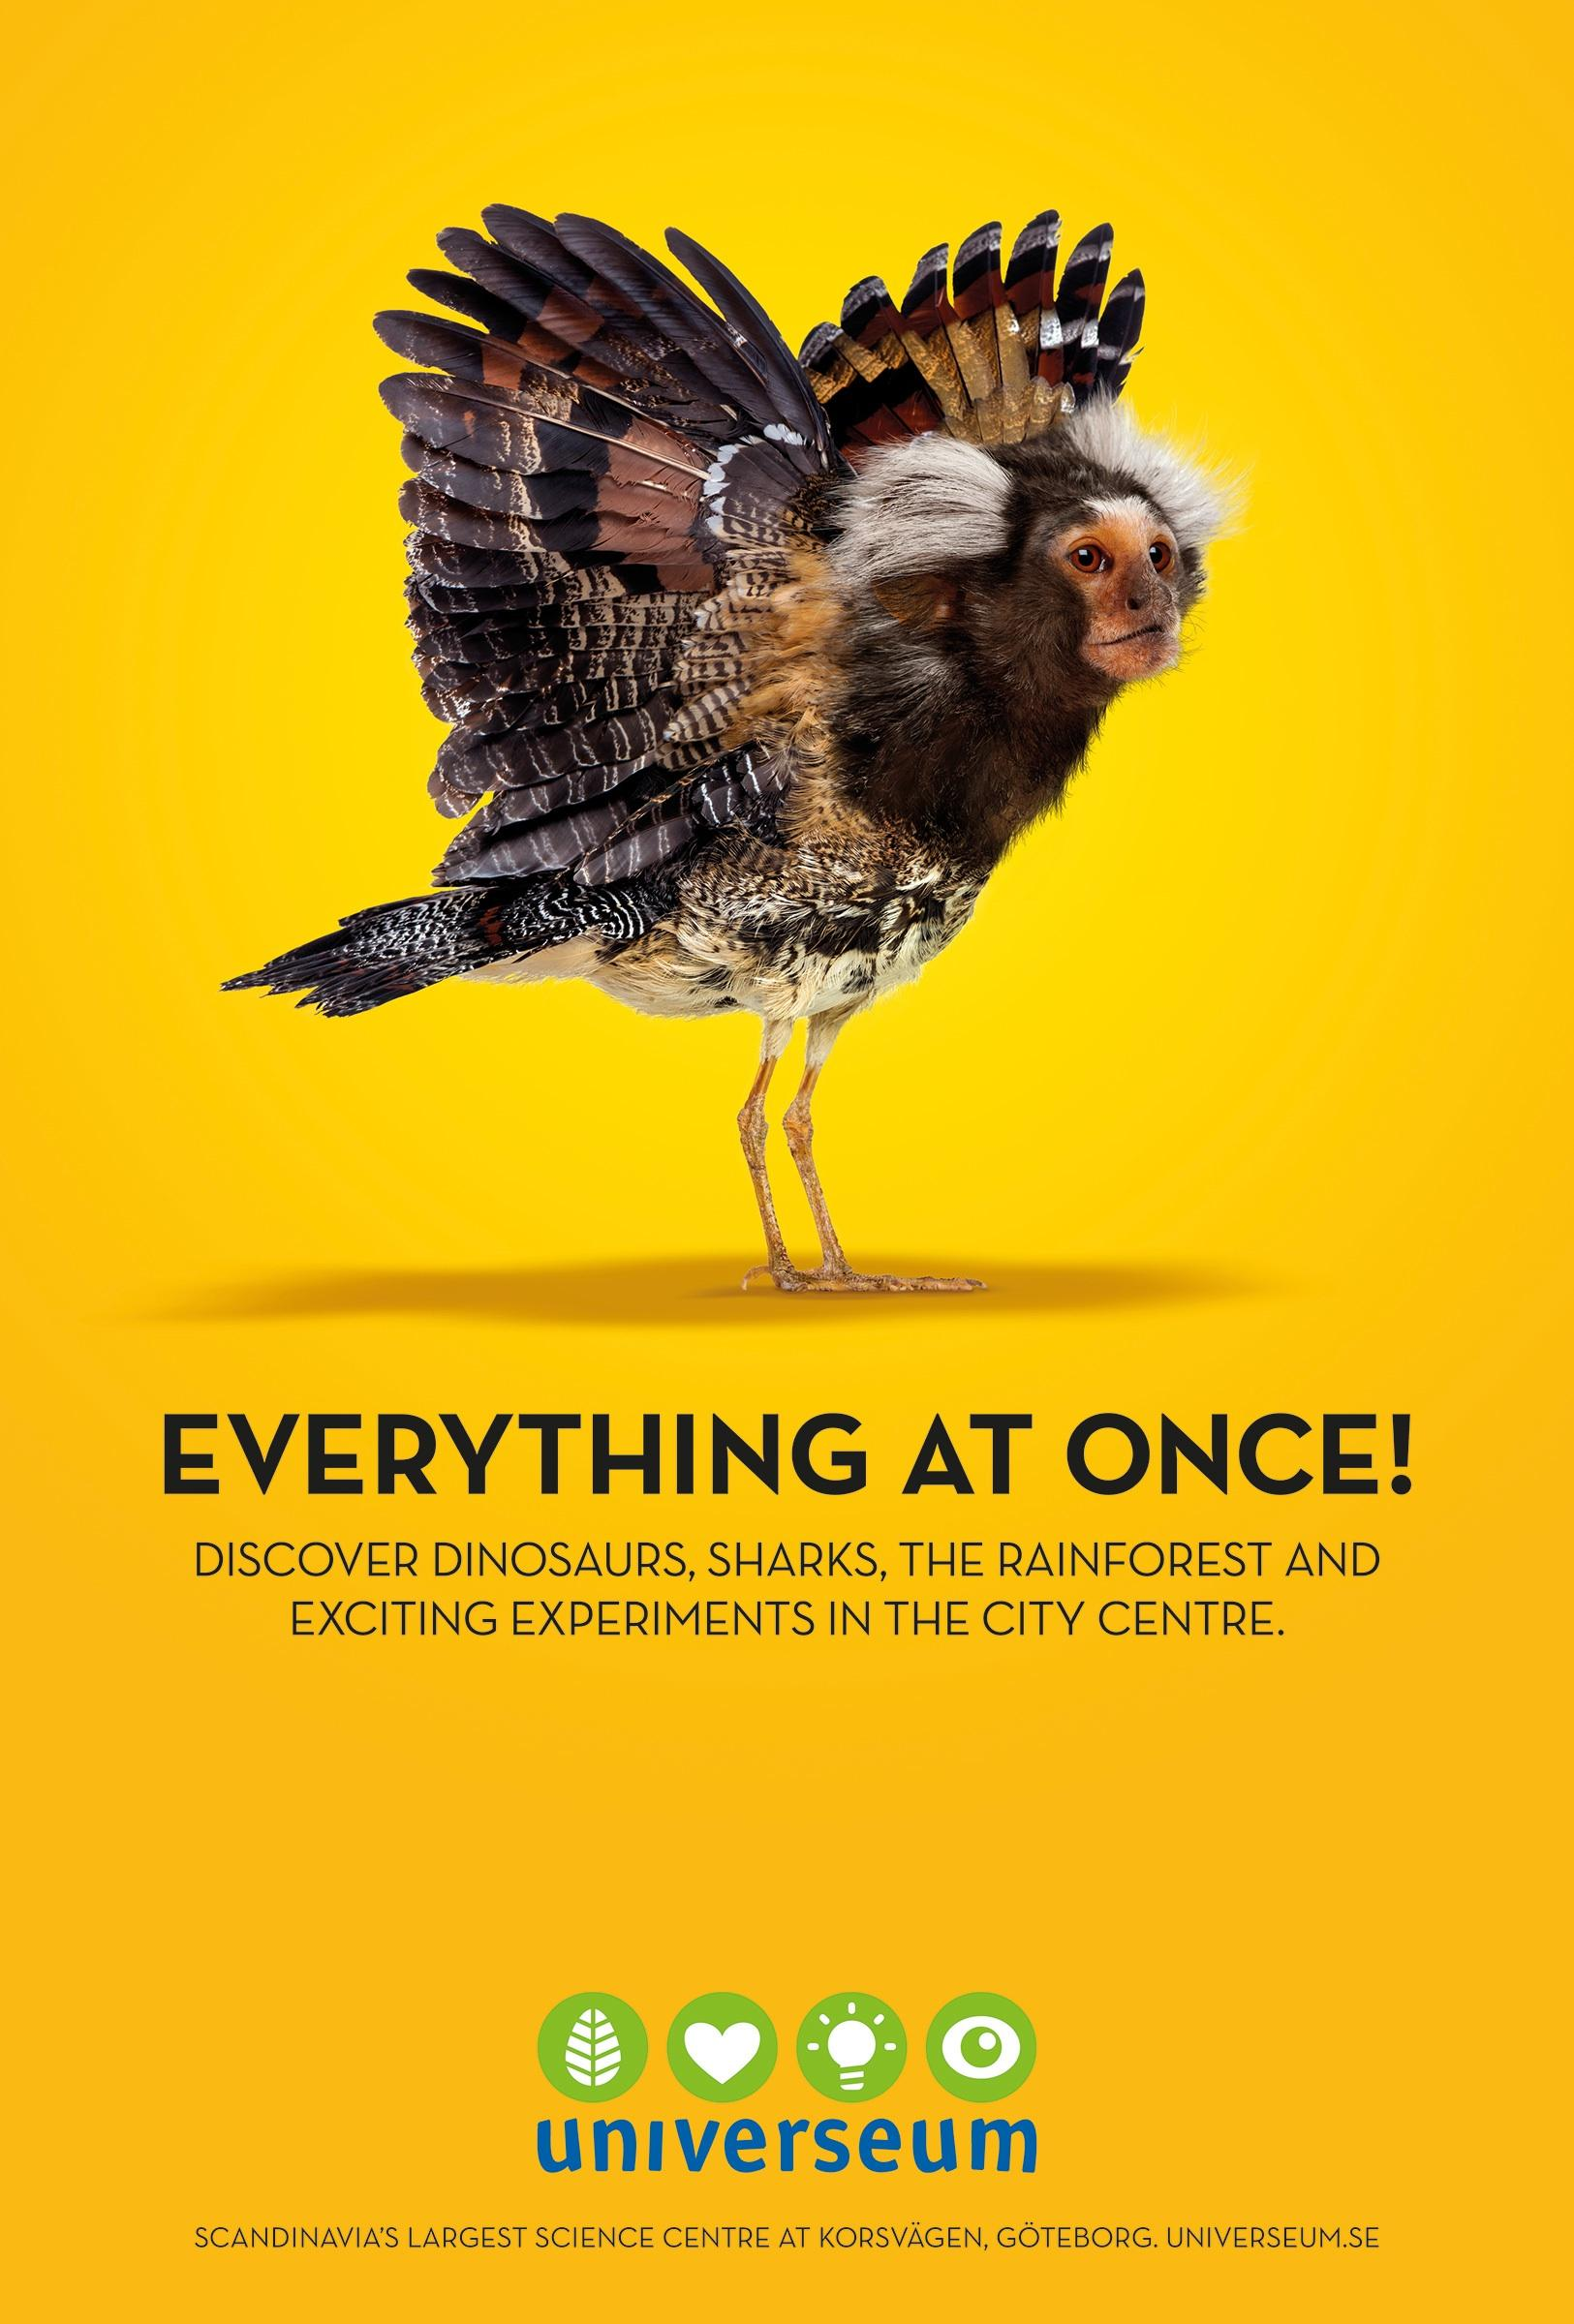 Universeum Outdoor Ad -  Everything at Once, 2